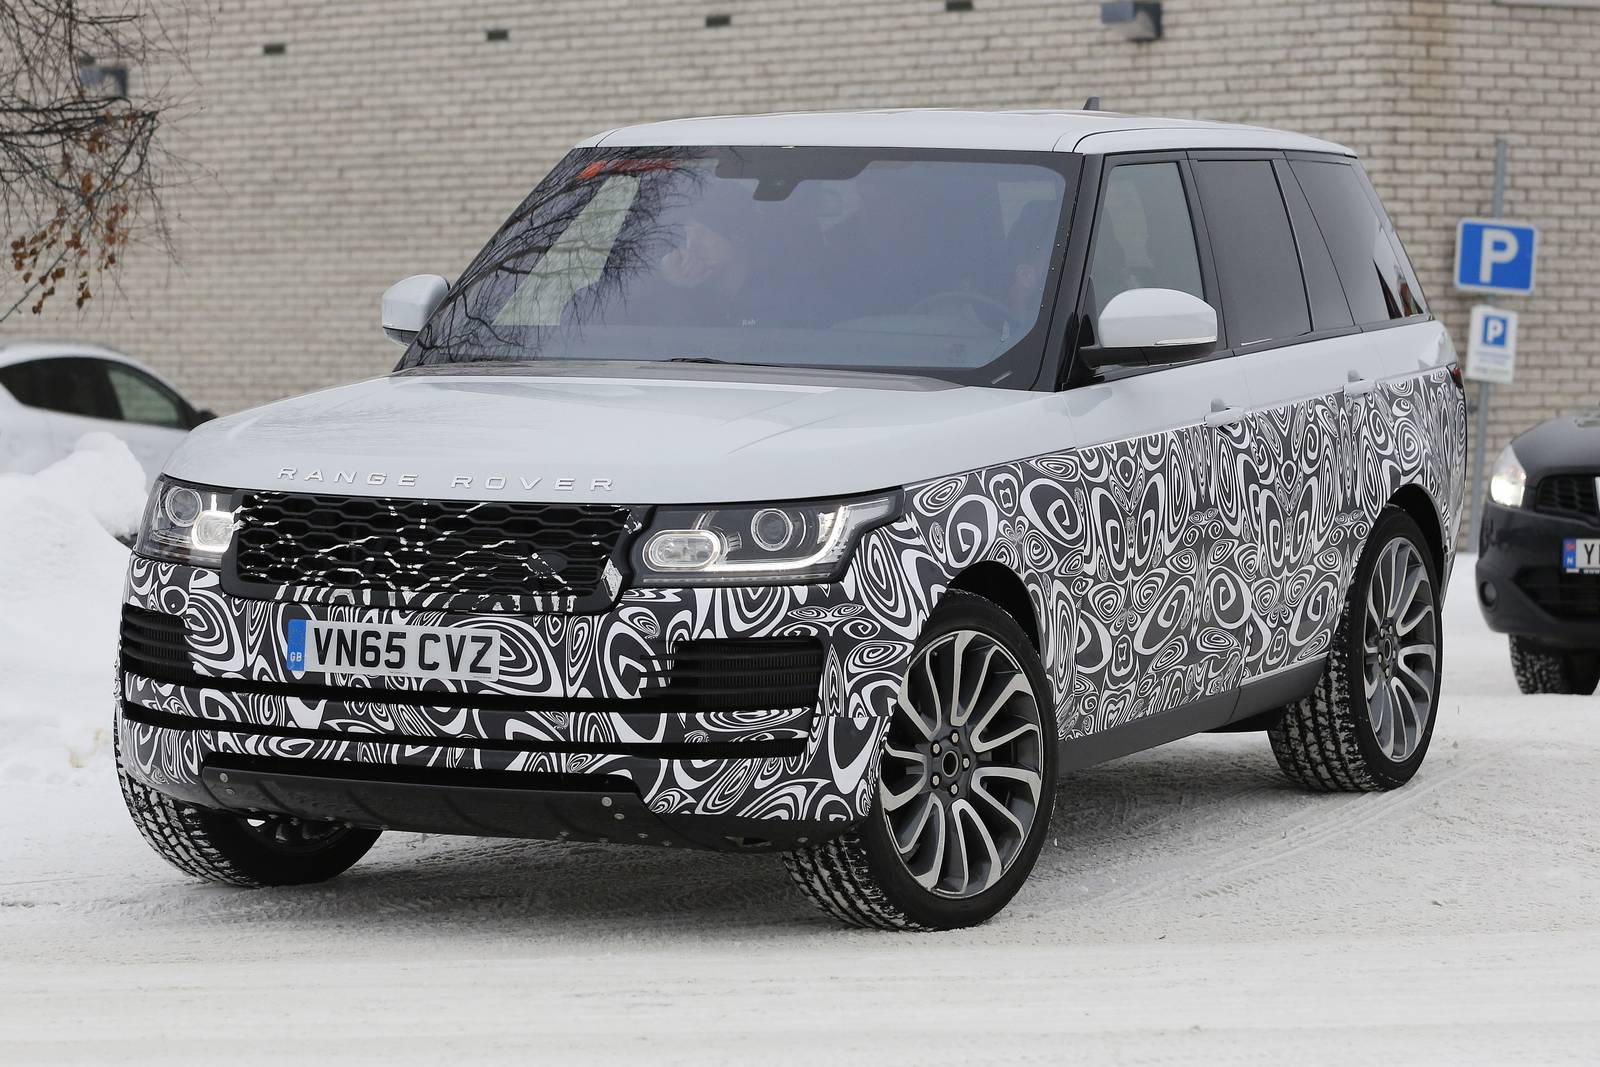 Range Rover Facelift Spy Shots Supercar